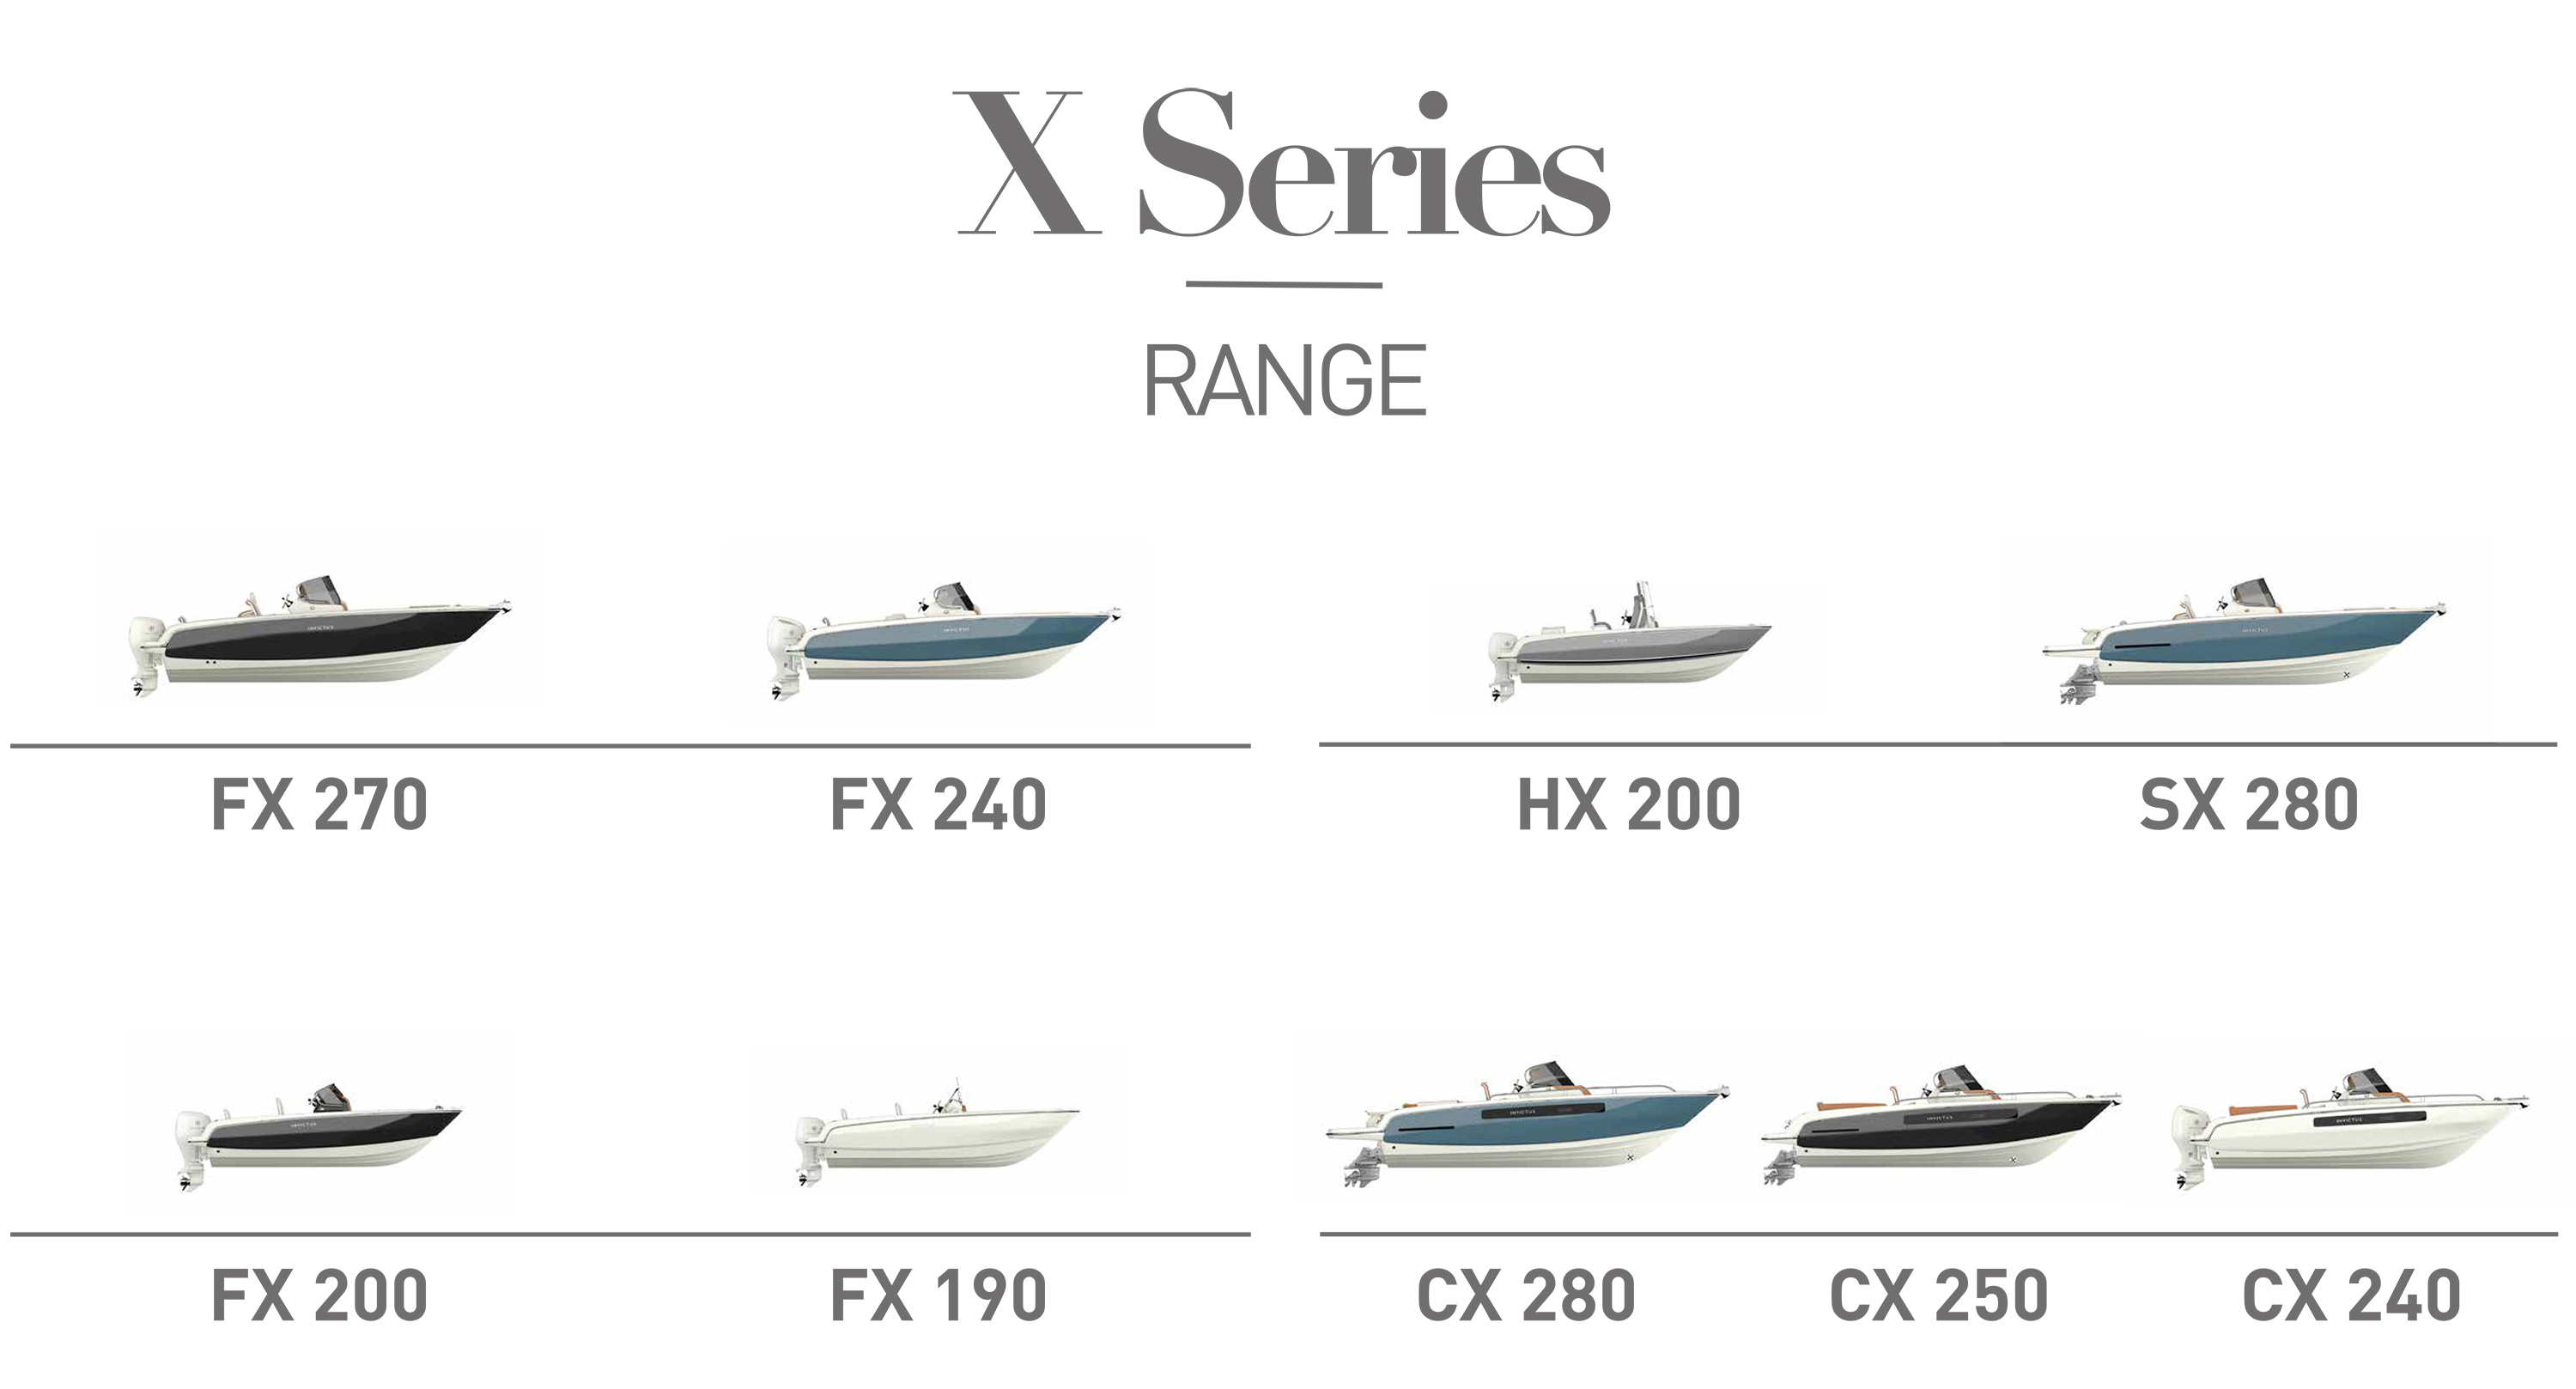 2019 X Series Line Up